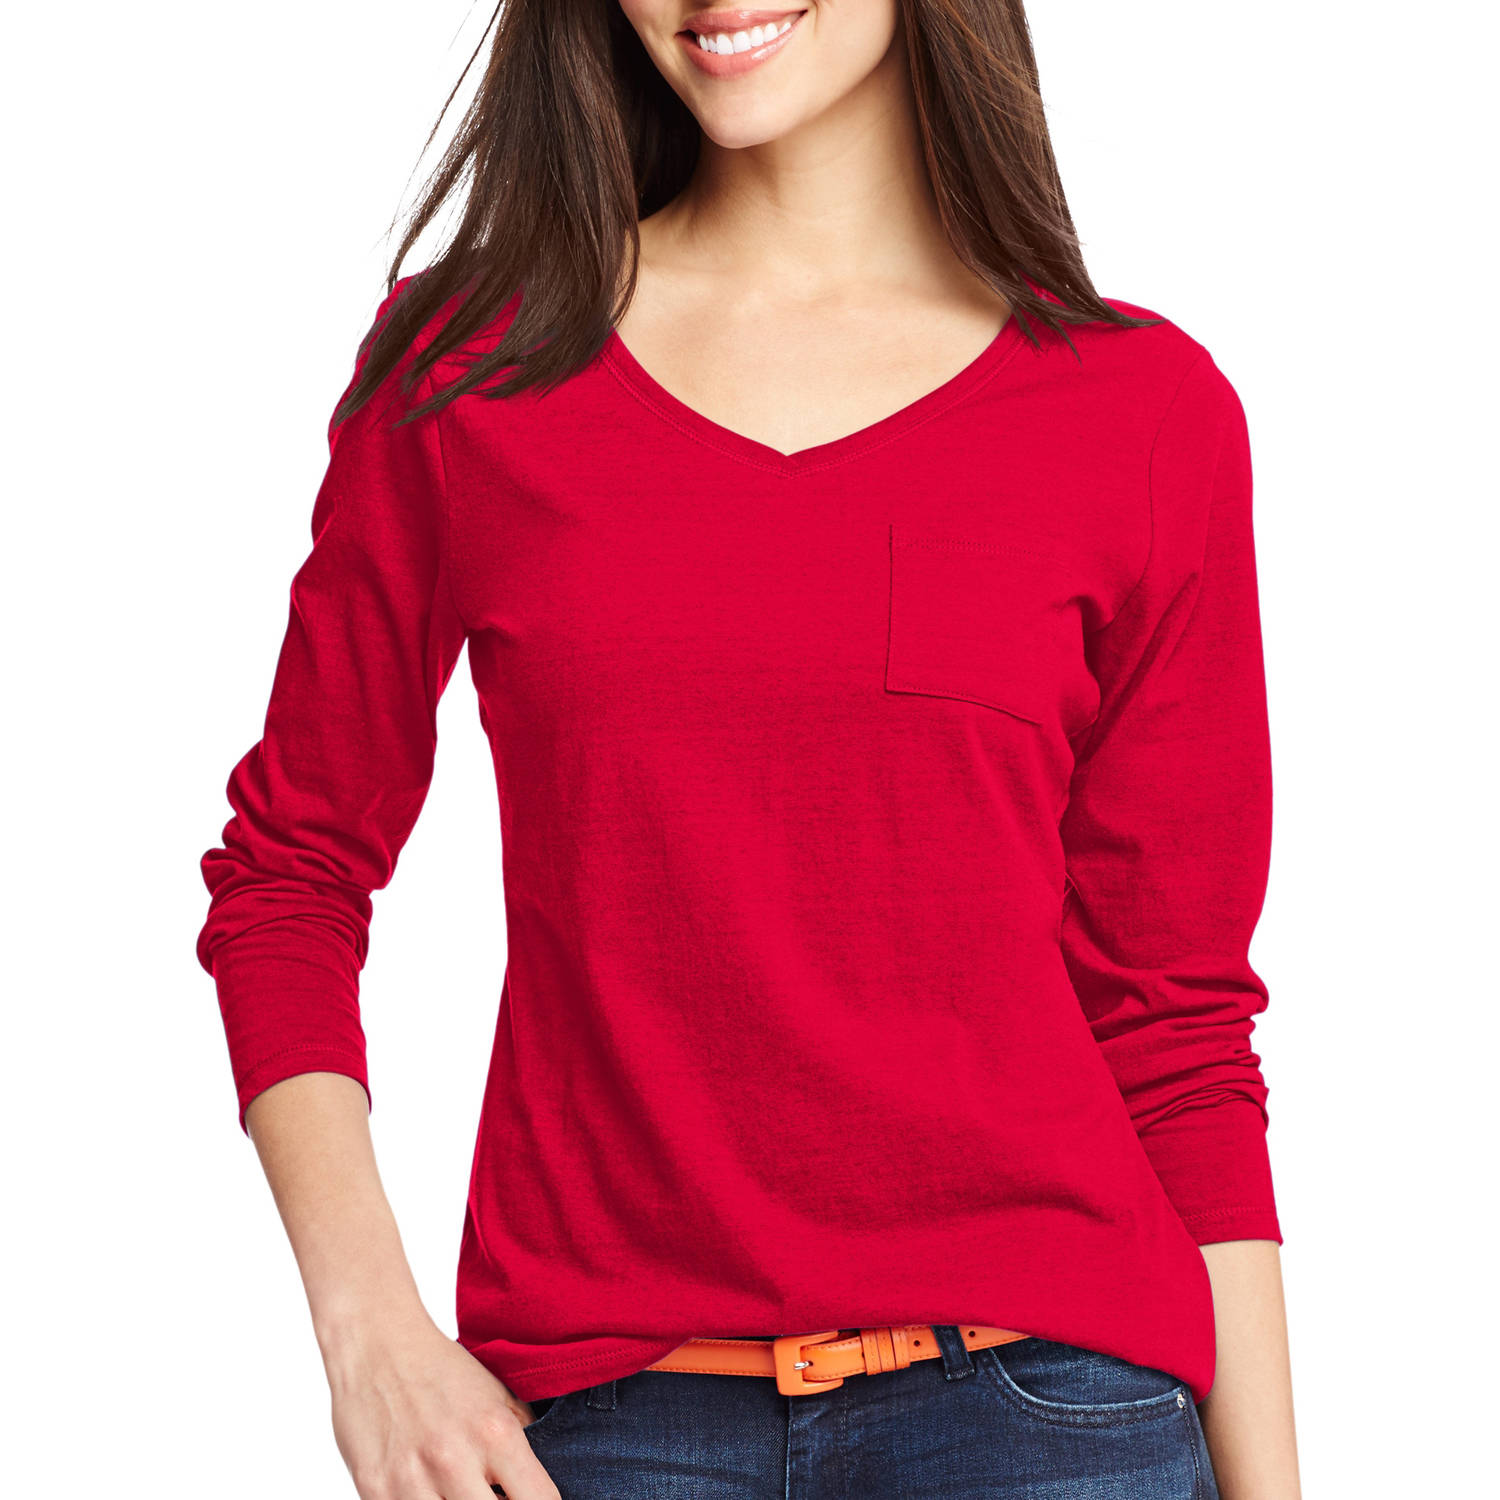 Women's Long Sleeve T Shirts | Gommap Blog